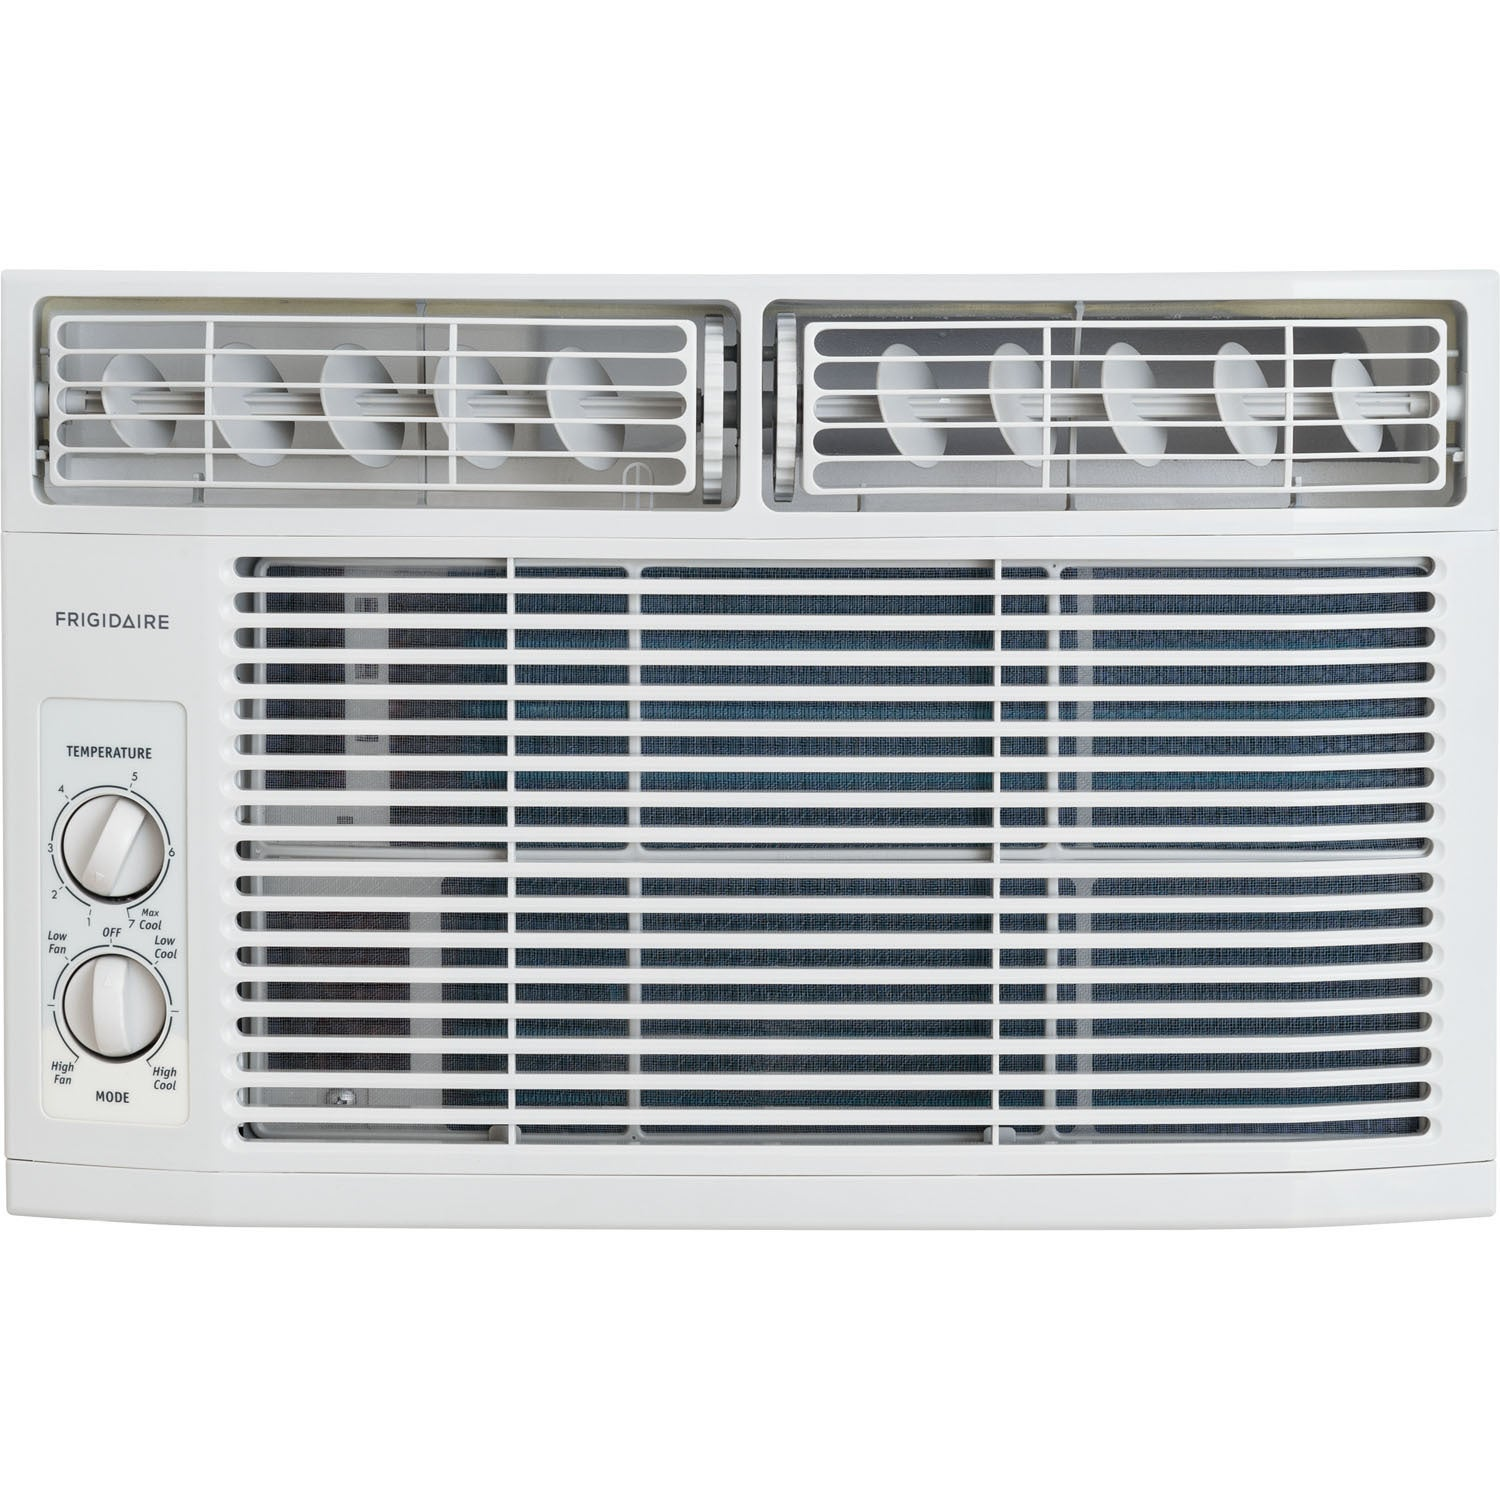 Frigidaire White FFRA0611R1 6,000 BTU 115V Window-Mounted...